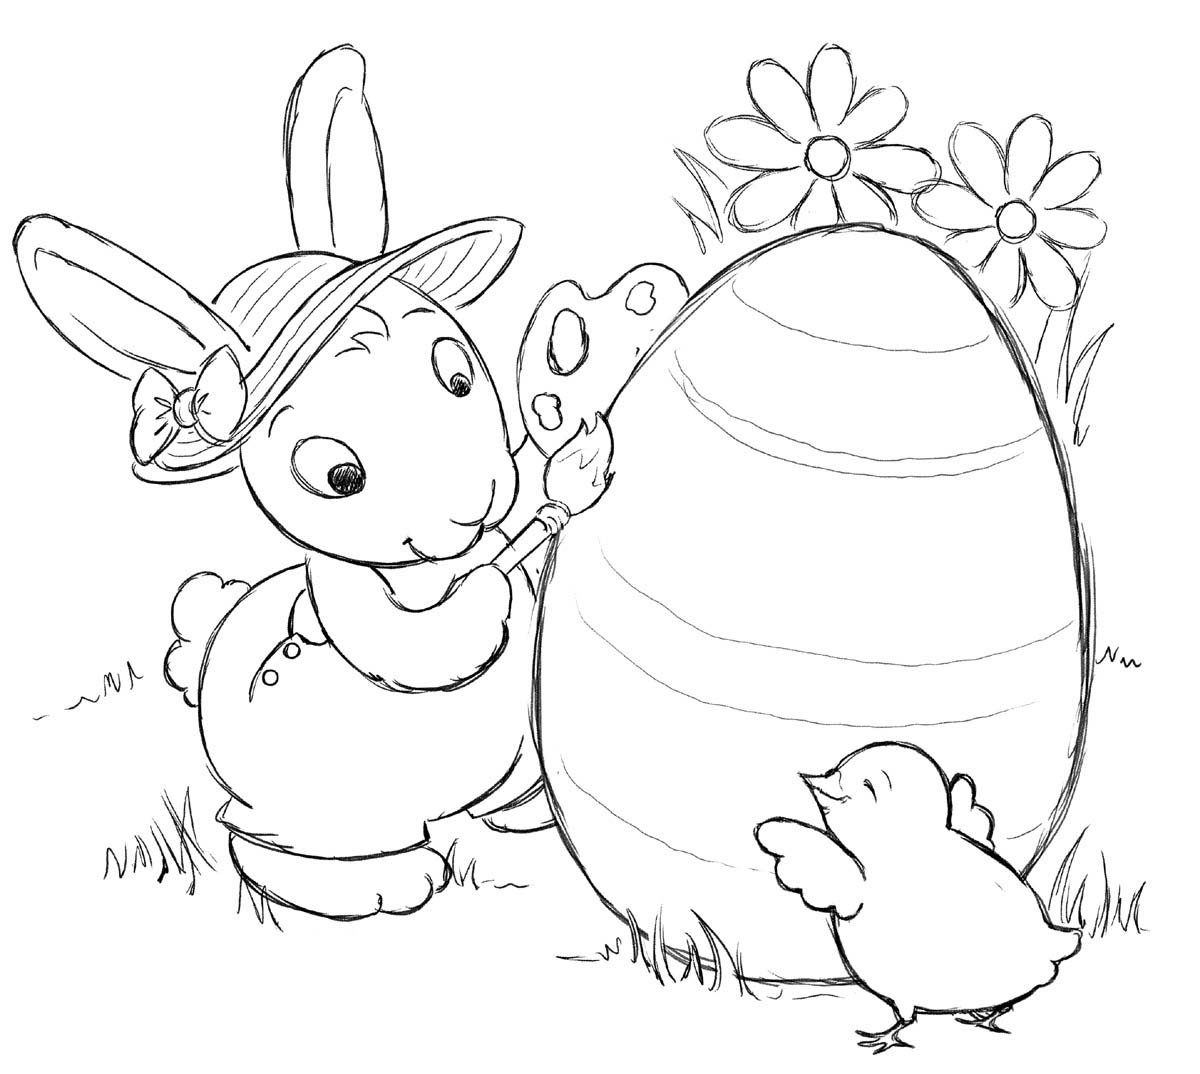 bunny coloring sheets free printable free printable rabbit coloring pages for kids sheets printable free coloring bunny